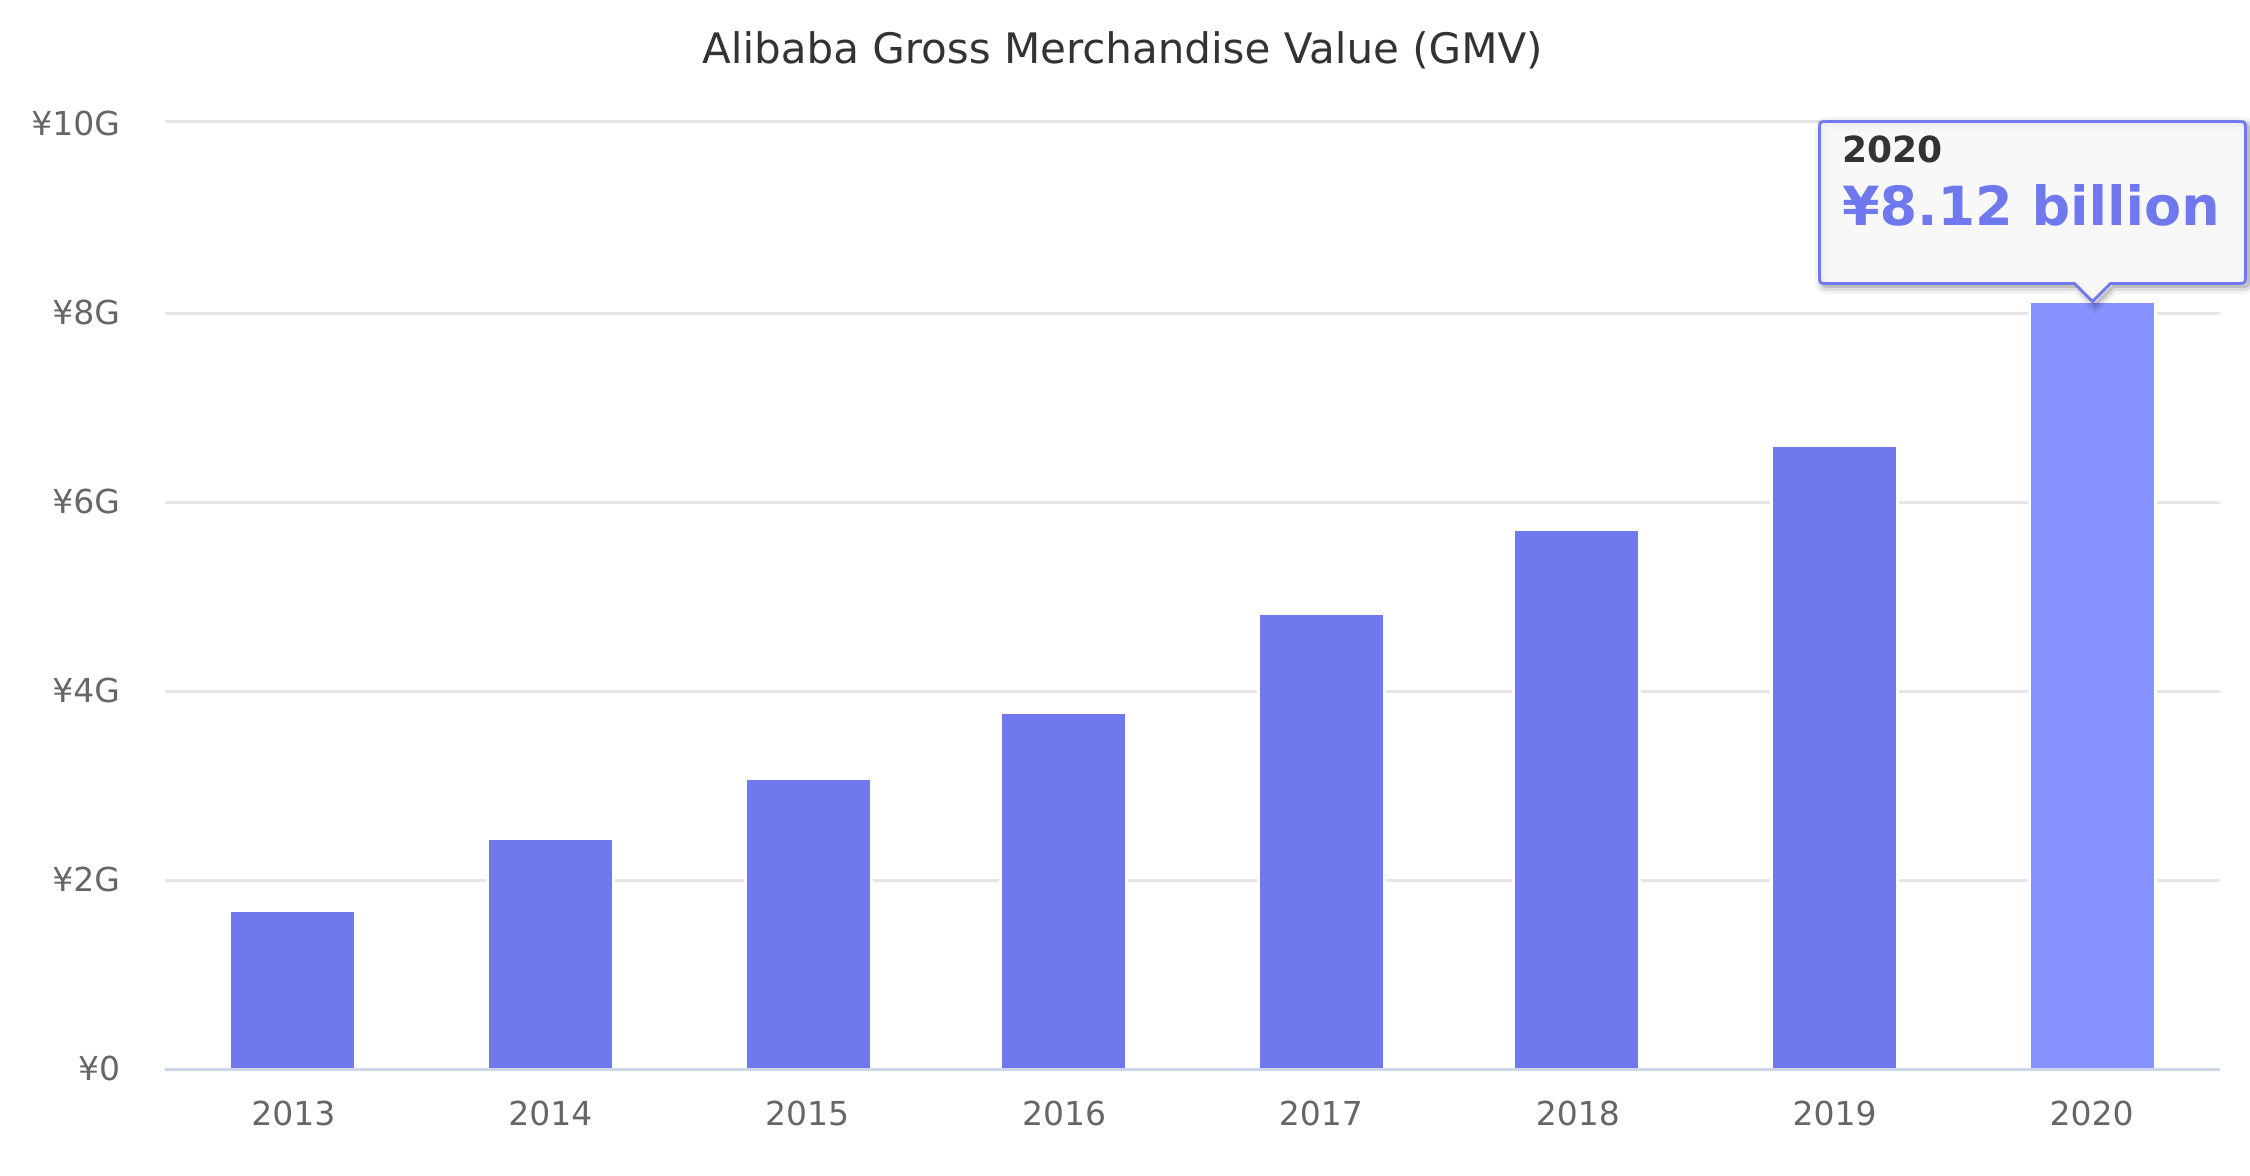 Alibaba Gross Merchandise Value (GMV) 2013-2017